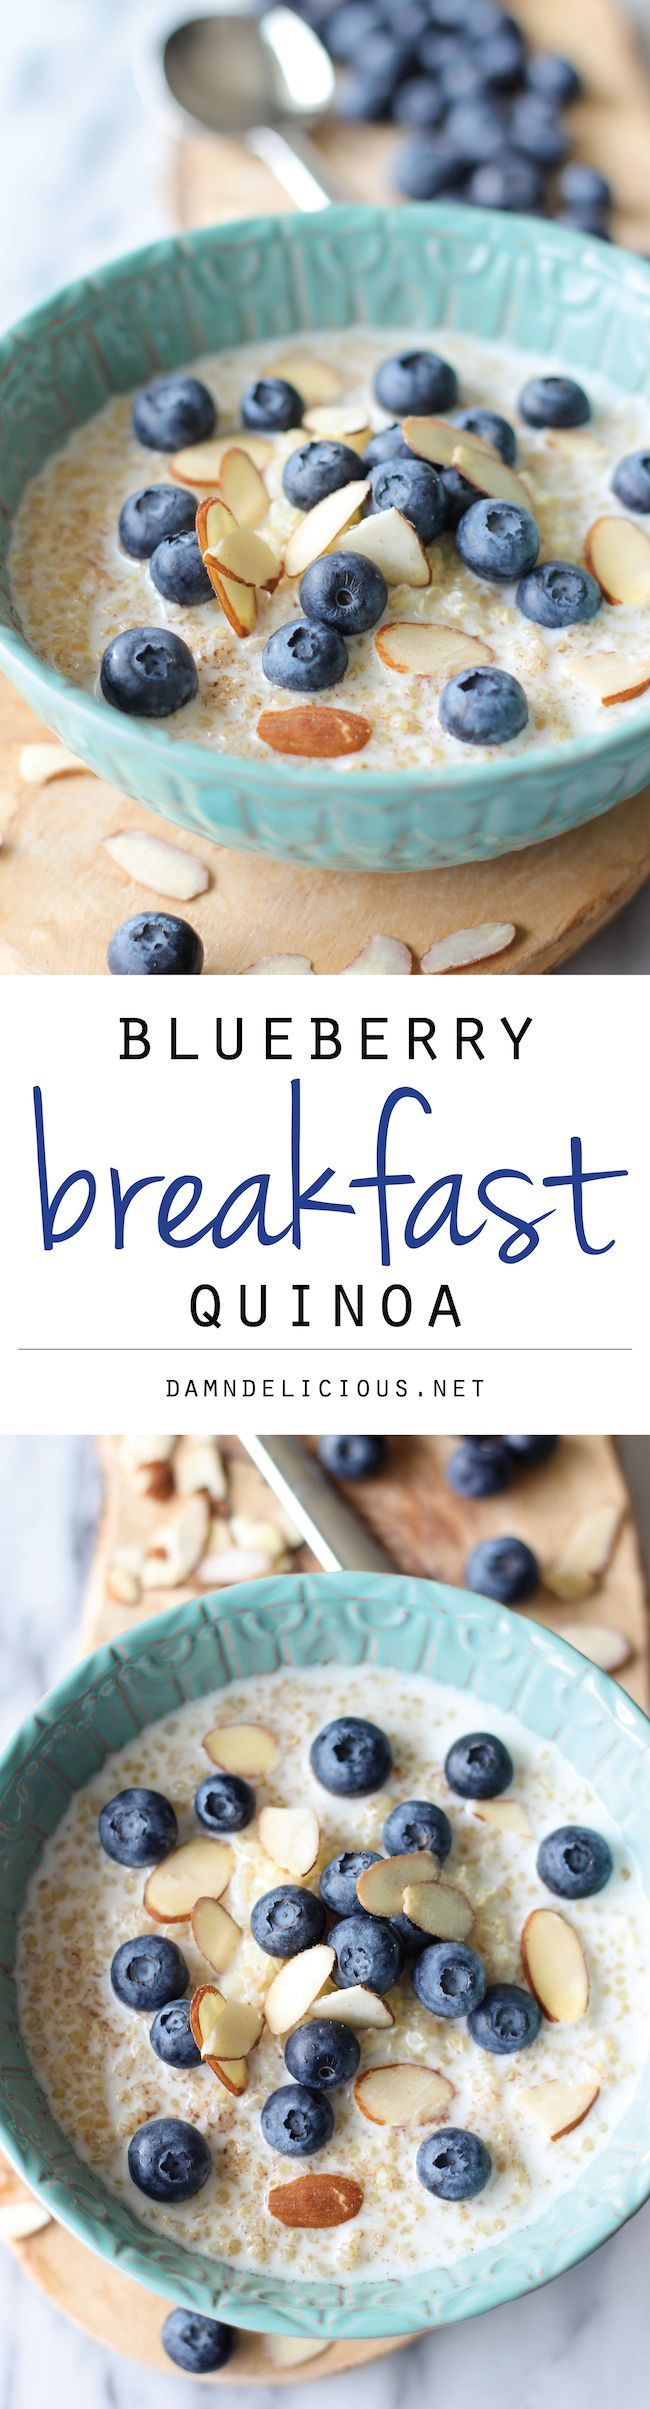 Start your day off right with this protein-packed quinoa breakfast bowl with a touch of tart sweetness from fresh blueberries and a drizzle of honey!